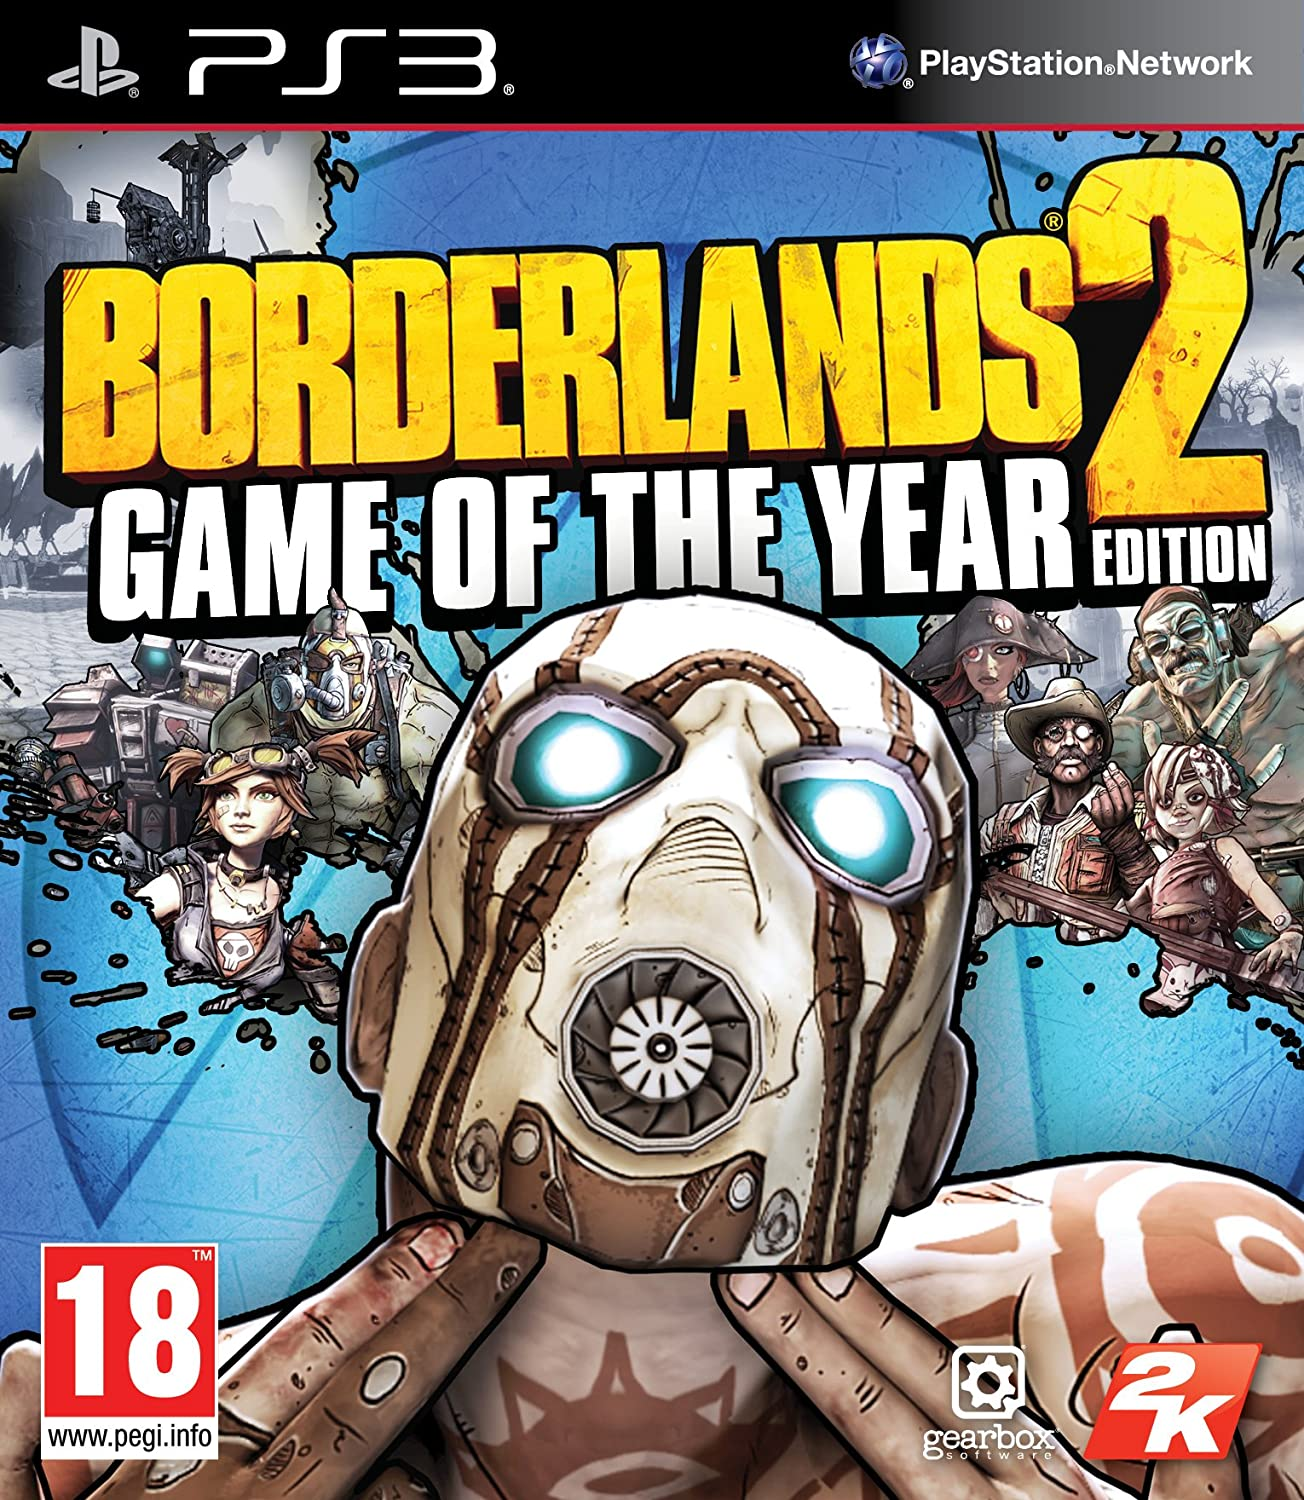 Amazon com: Borderlands 2 Game of the Year Edition (PS3) by